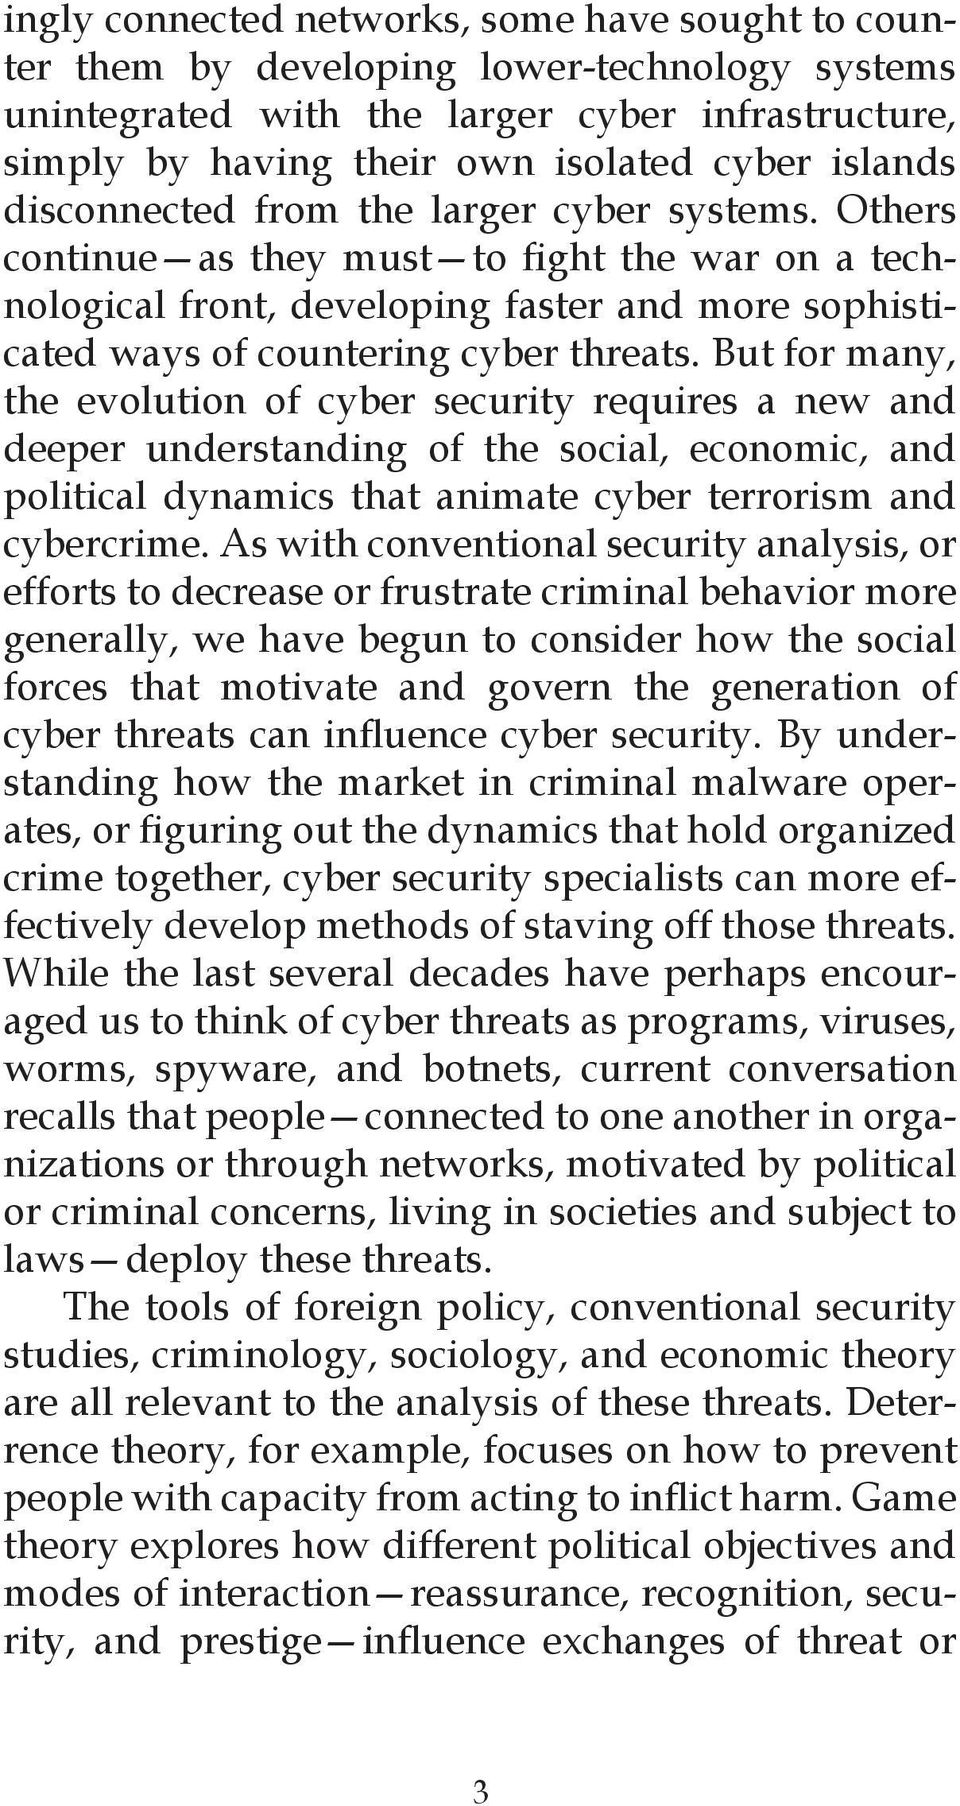 But for many, the evolution of cyber security requires a new and deeper understanding of the social, economic, and political dynamics that animate cyber terrorism and cybercrime.